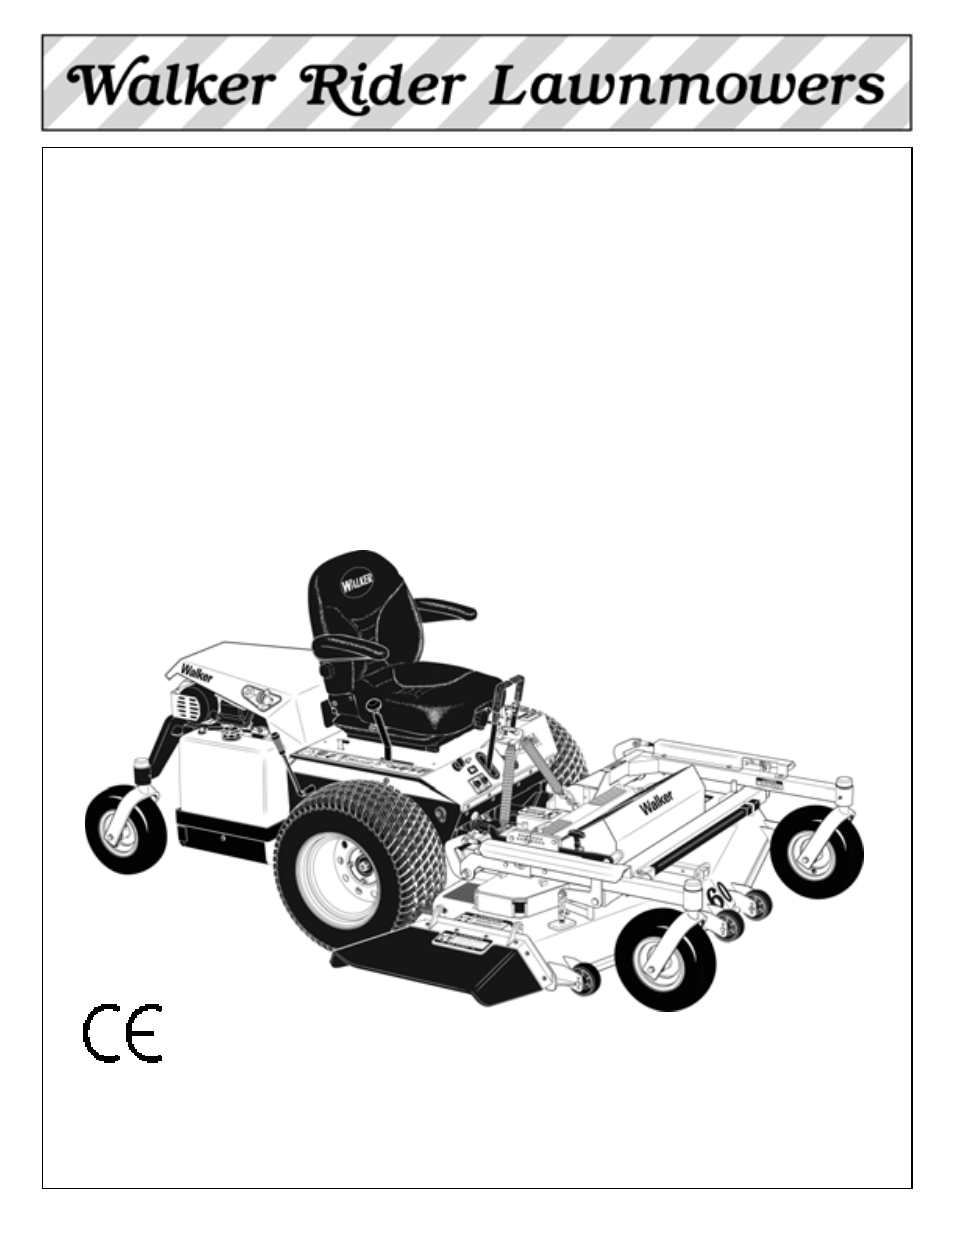 Hp 33s Manual Auto Electrical Wiring Diagram 1983 Honda Nighthawk Harness For Calculator